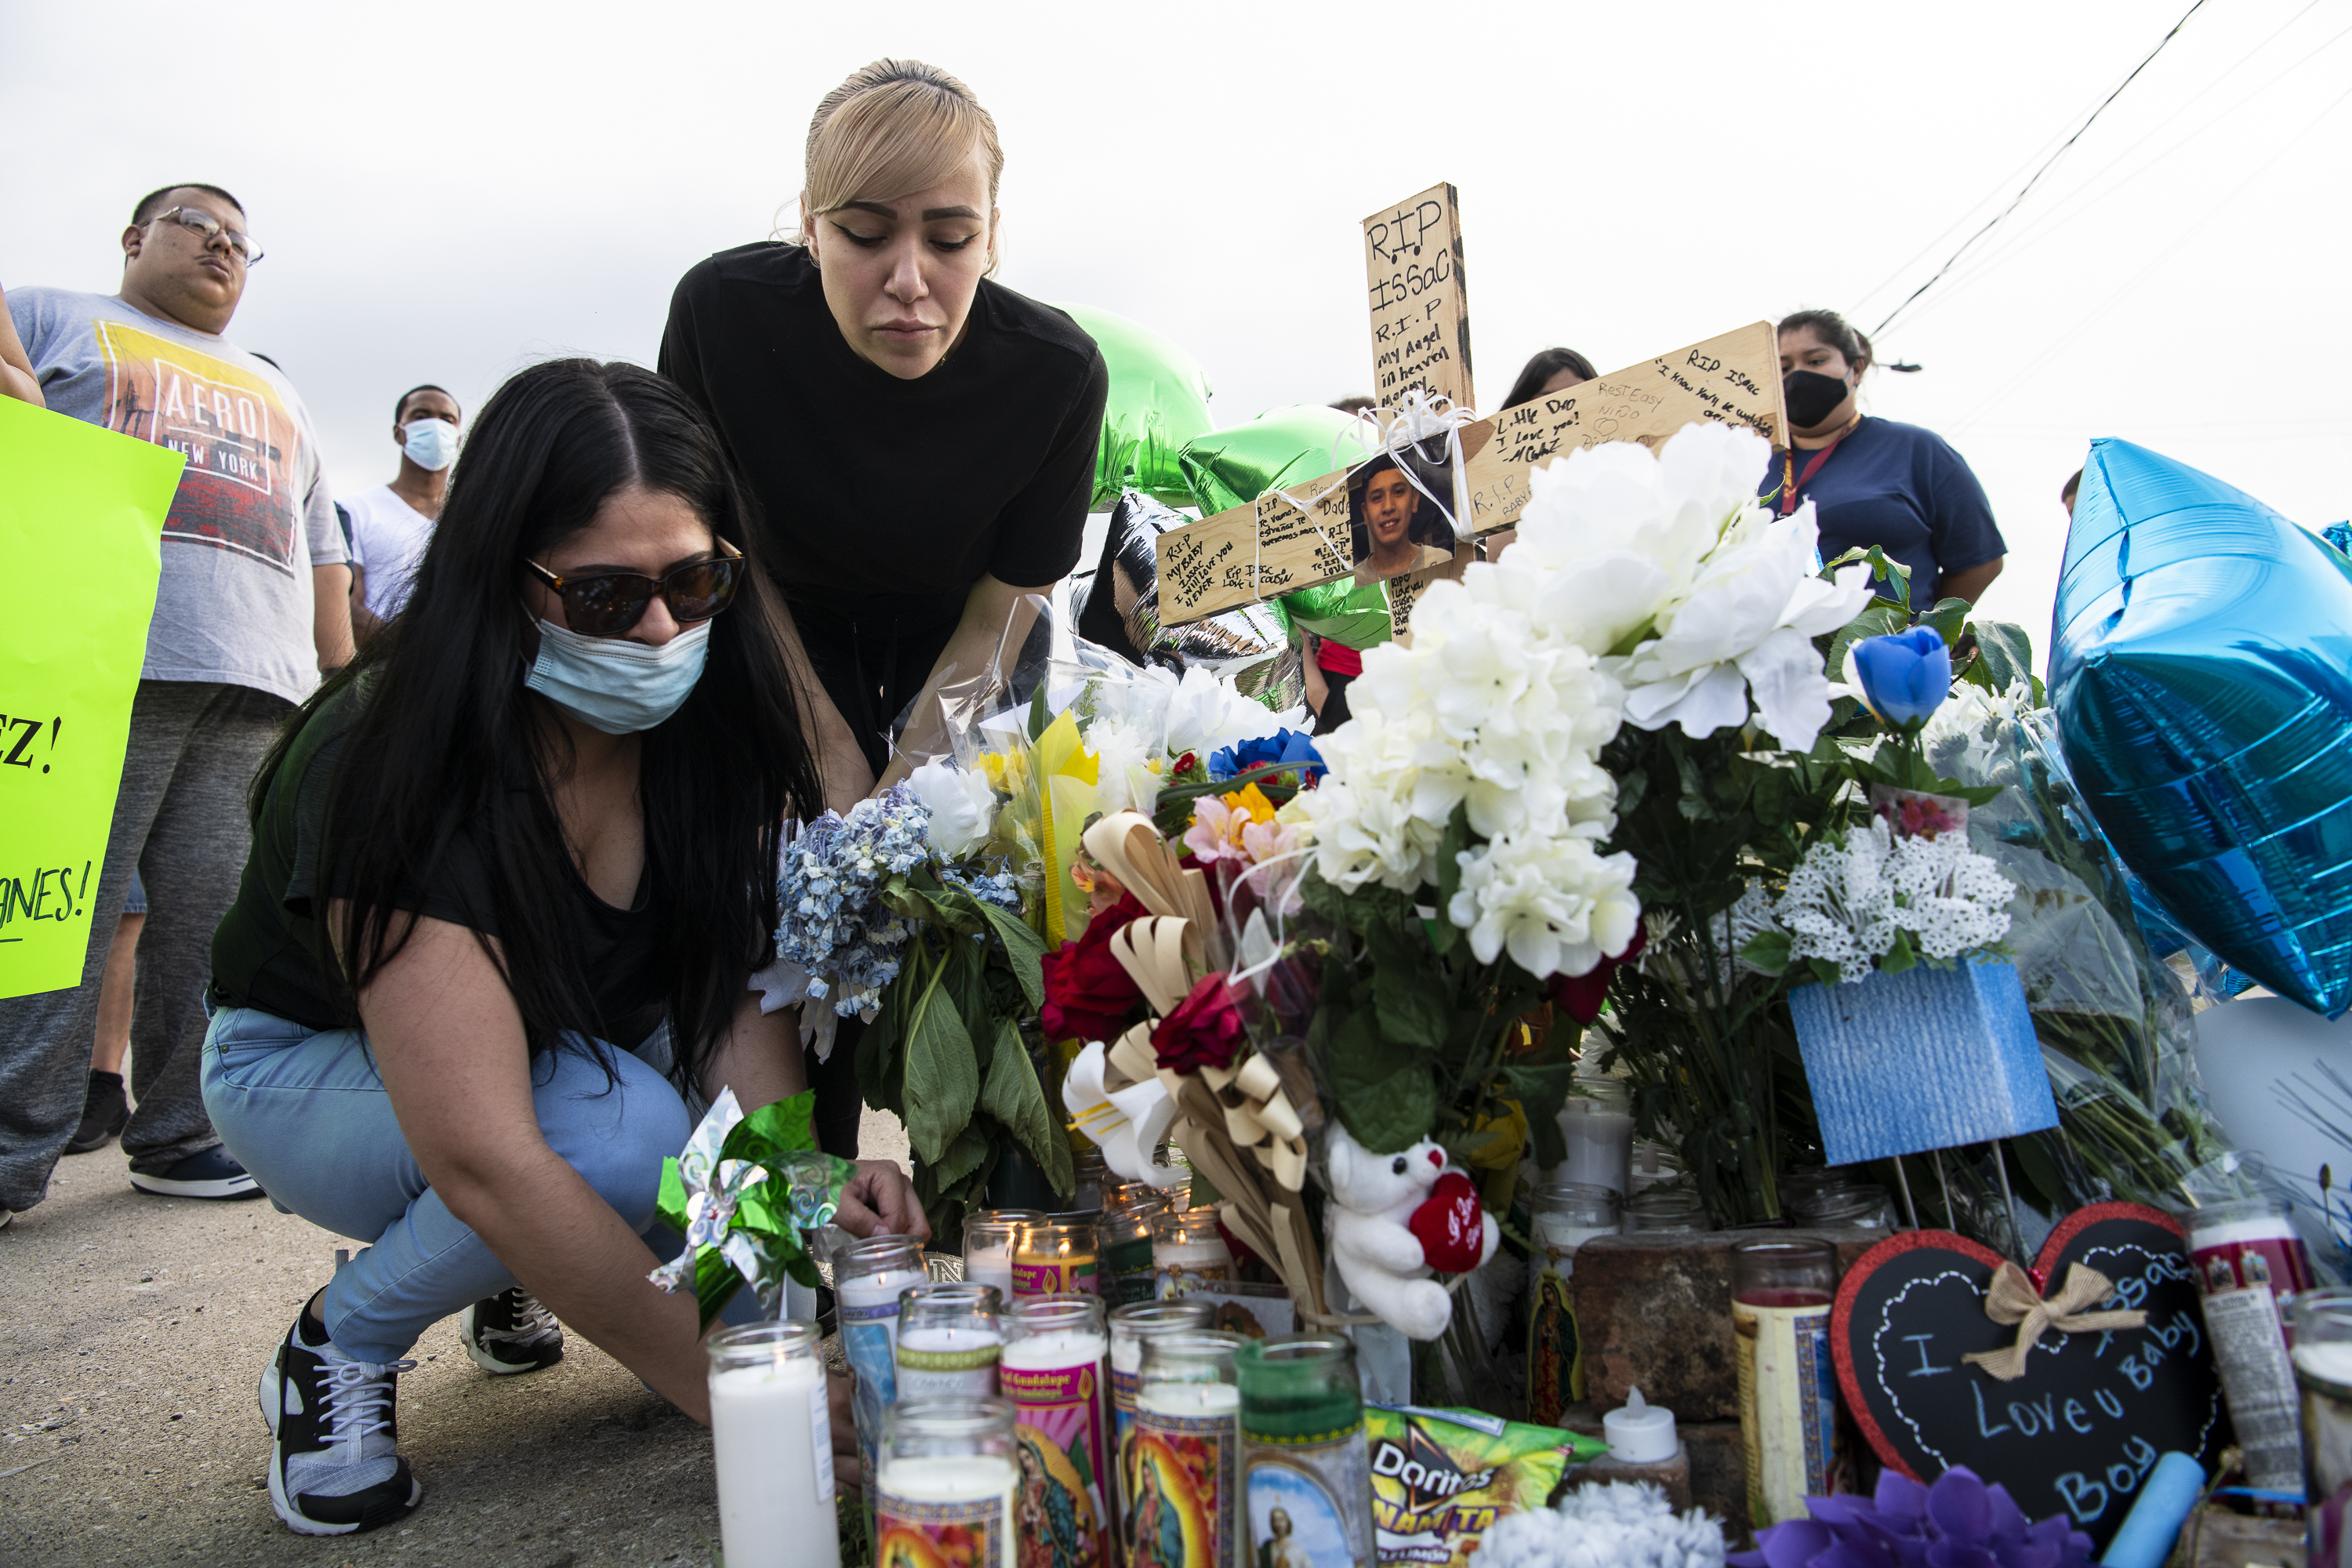 Itzel Dirzo, the mother of Issac Martinez, places flowers at his vigil Tuesday near South Lawndale and West Columbus avenues. Issac, 13, was killed in a hit-and-run while riding his bicycle.